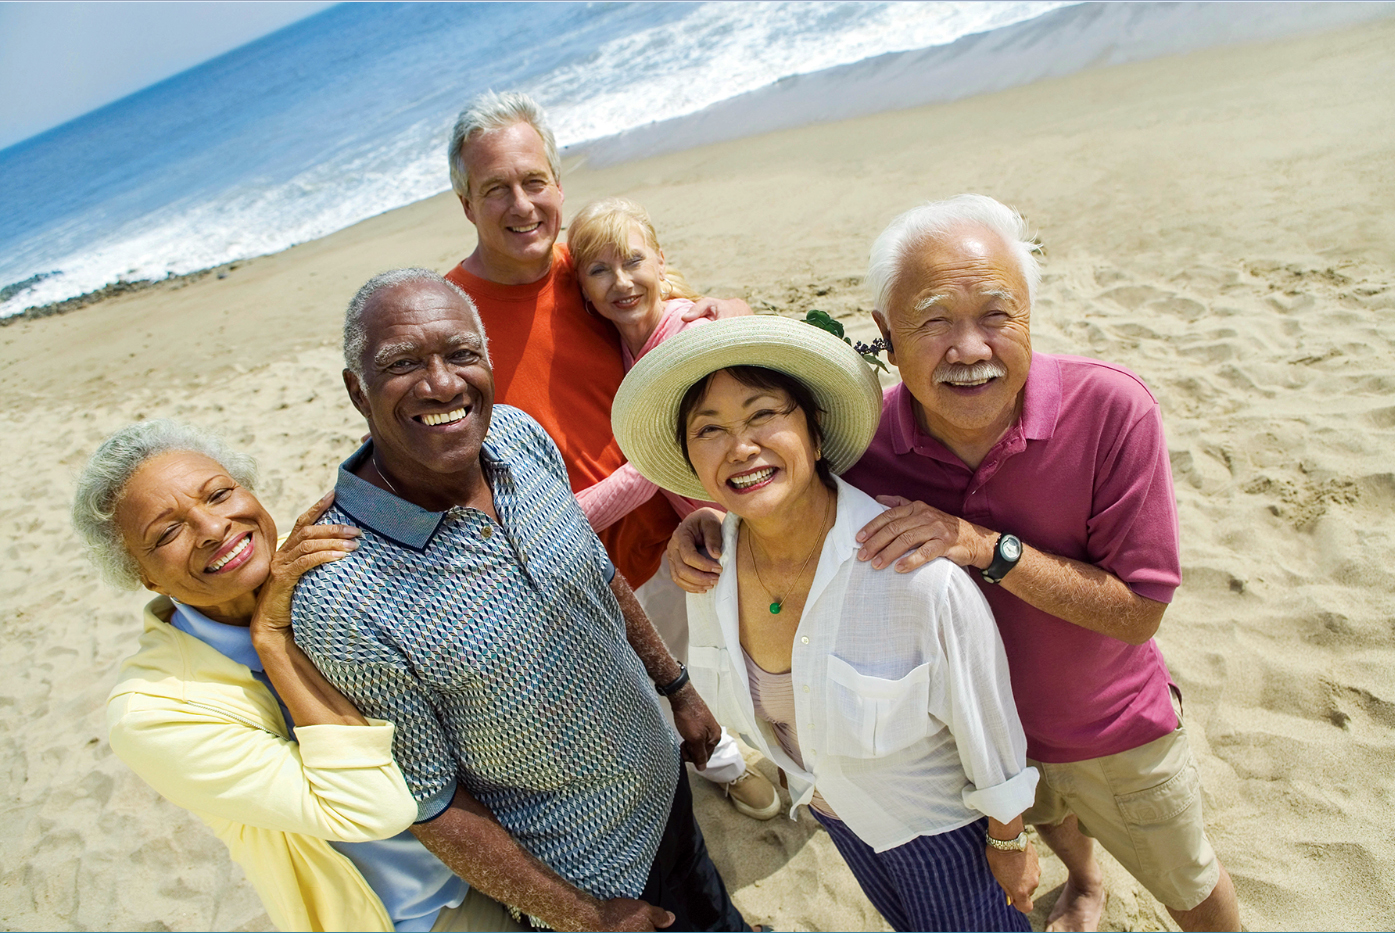 Health Tips and Advice for Senior Travelers